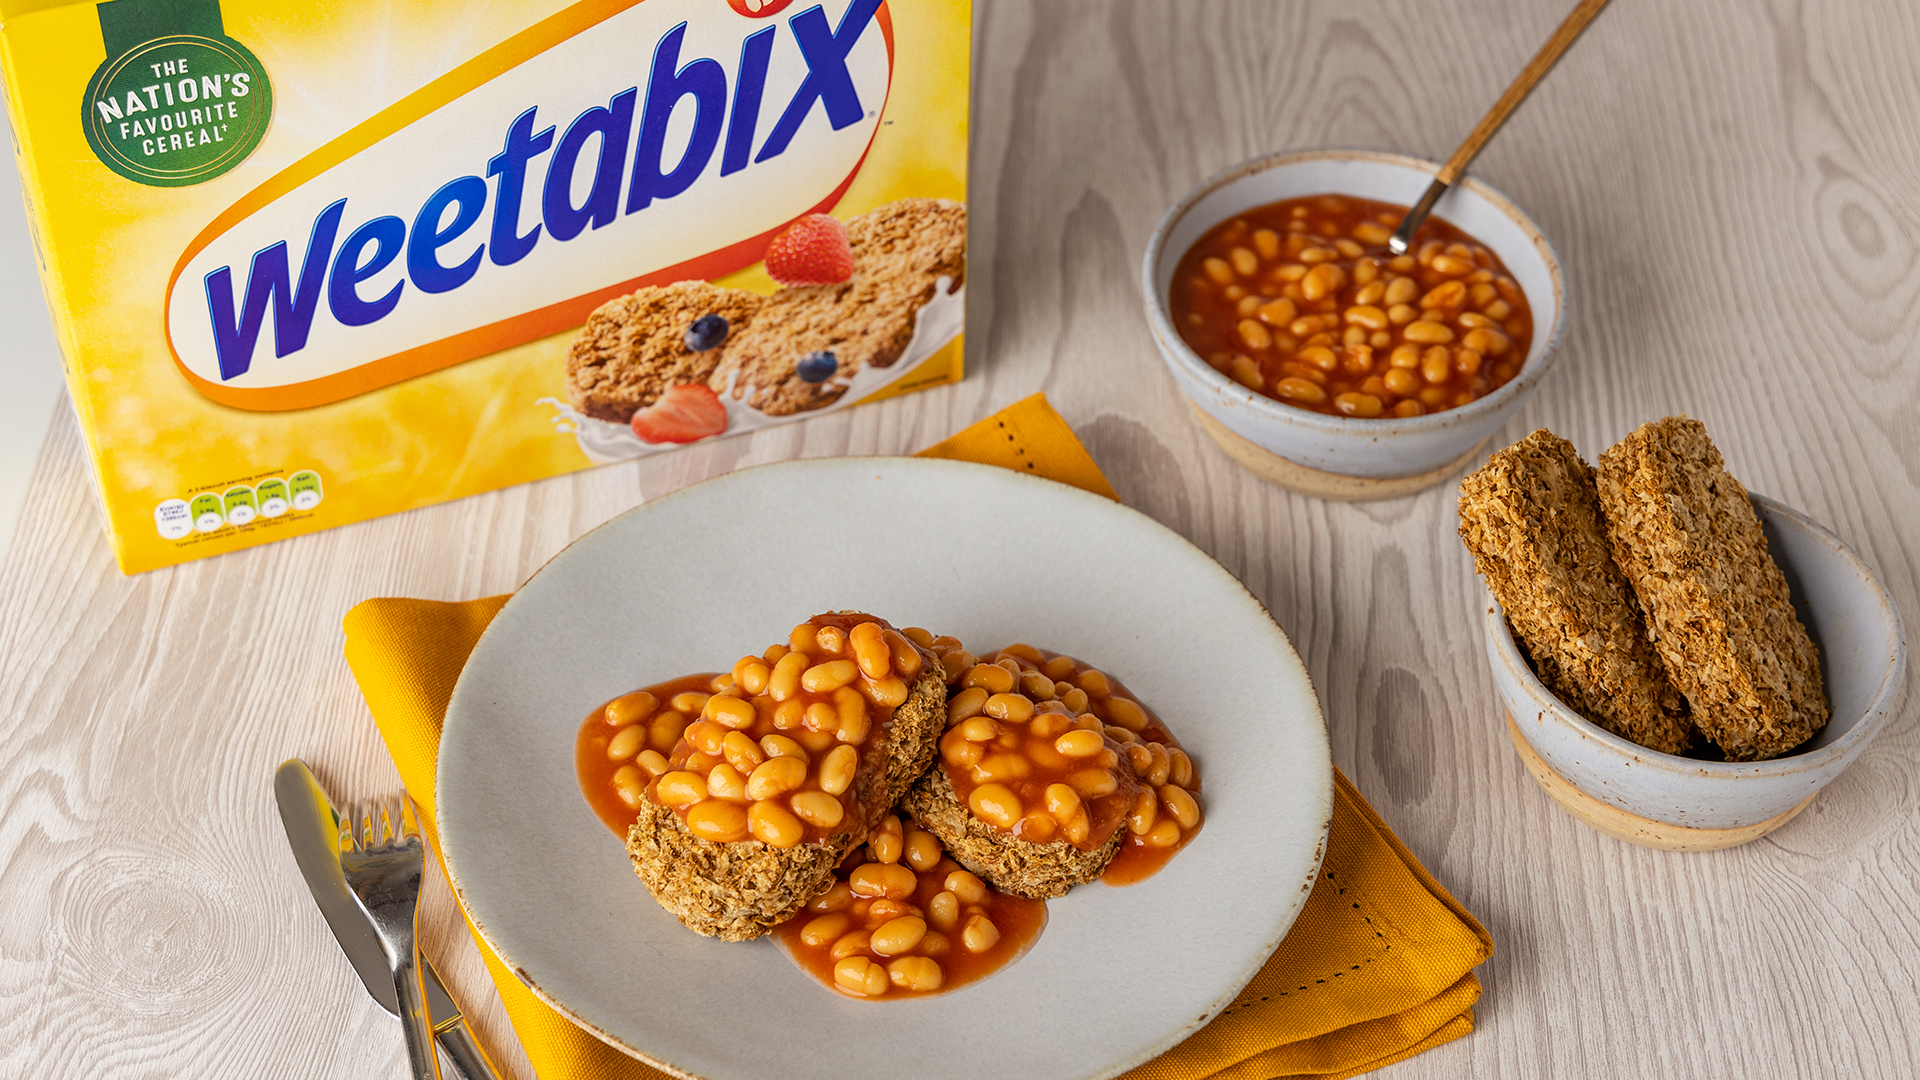 Even GMP's got involved with the Weetabix and baked beans outrage on Twitter, The Manc